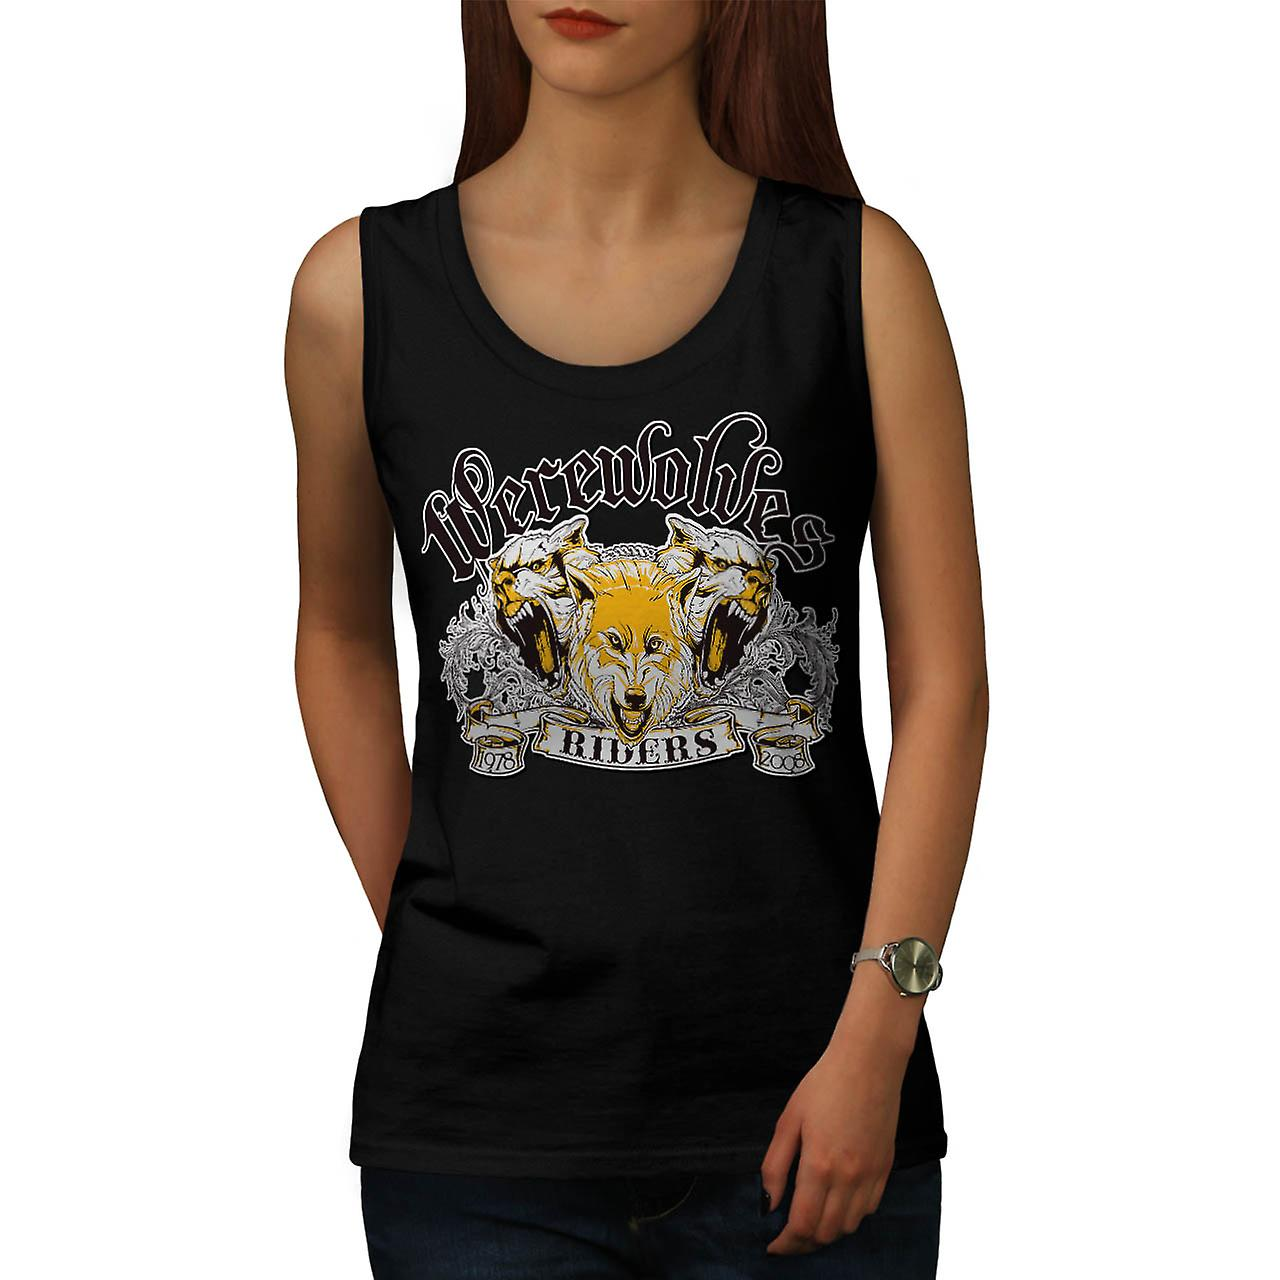 Lupi mannari Riders Biker donna Black Tank Top | Wellcoda